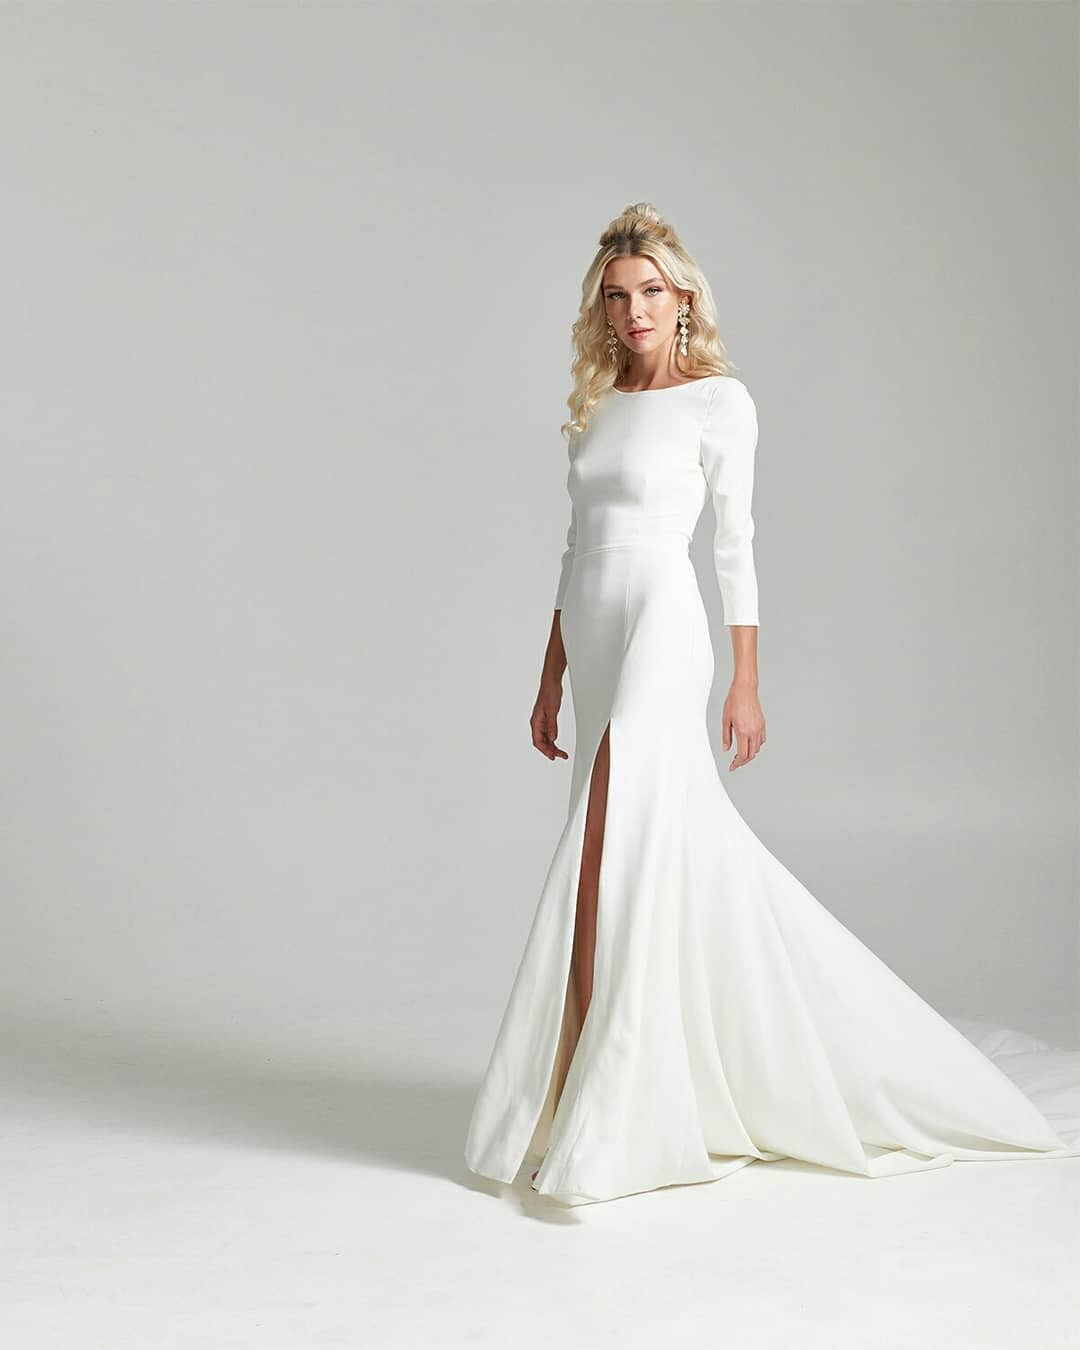 Rebecca Schoneveld is a modern bridal designer and her new 2020 bridal collection can be found at Arizona bridal shop Neue Bride in Mesa, Arizona!